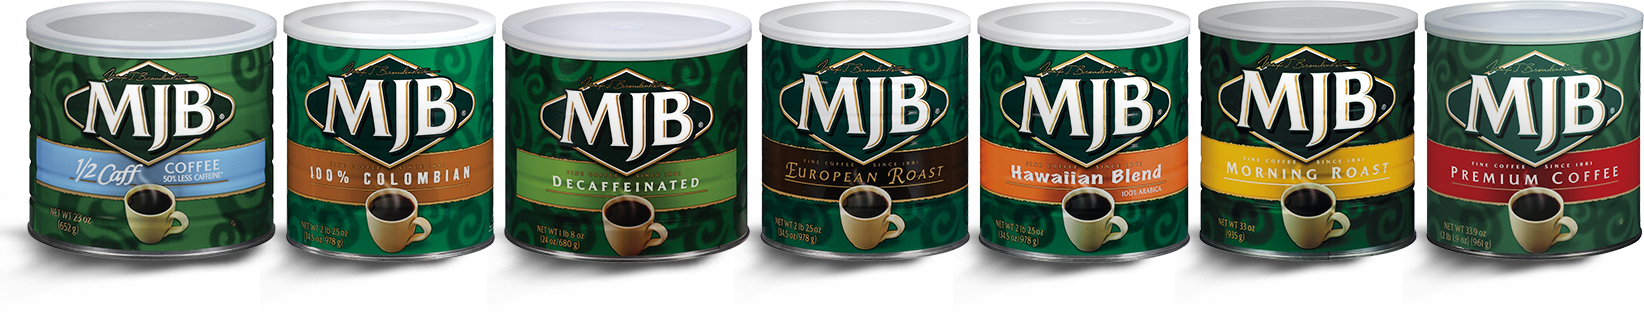 Group of MJB Coffee Cans